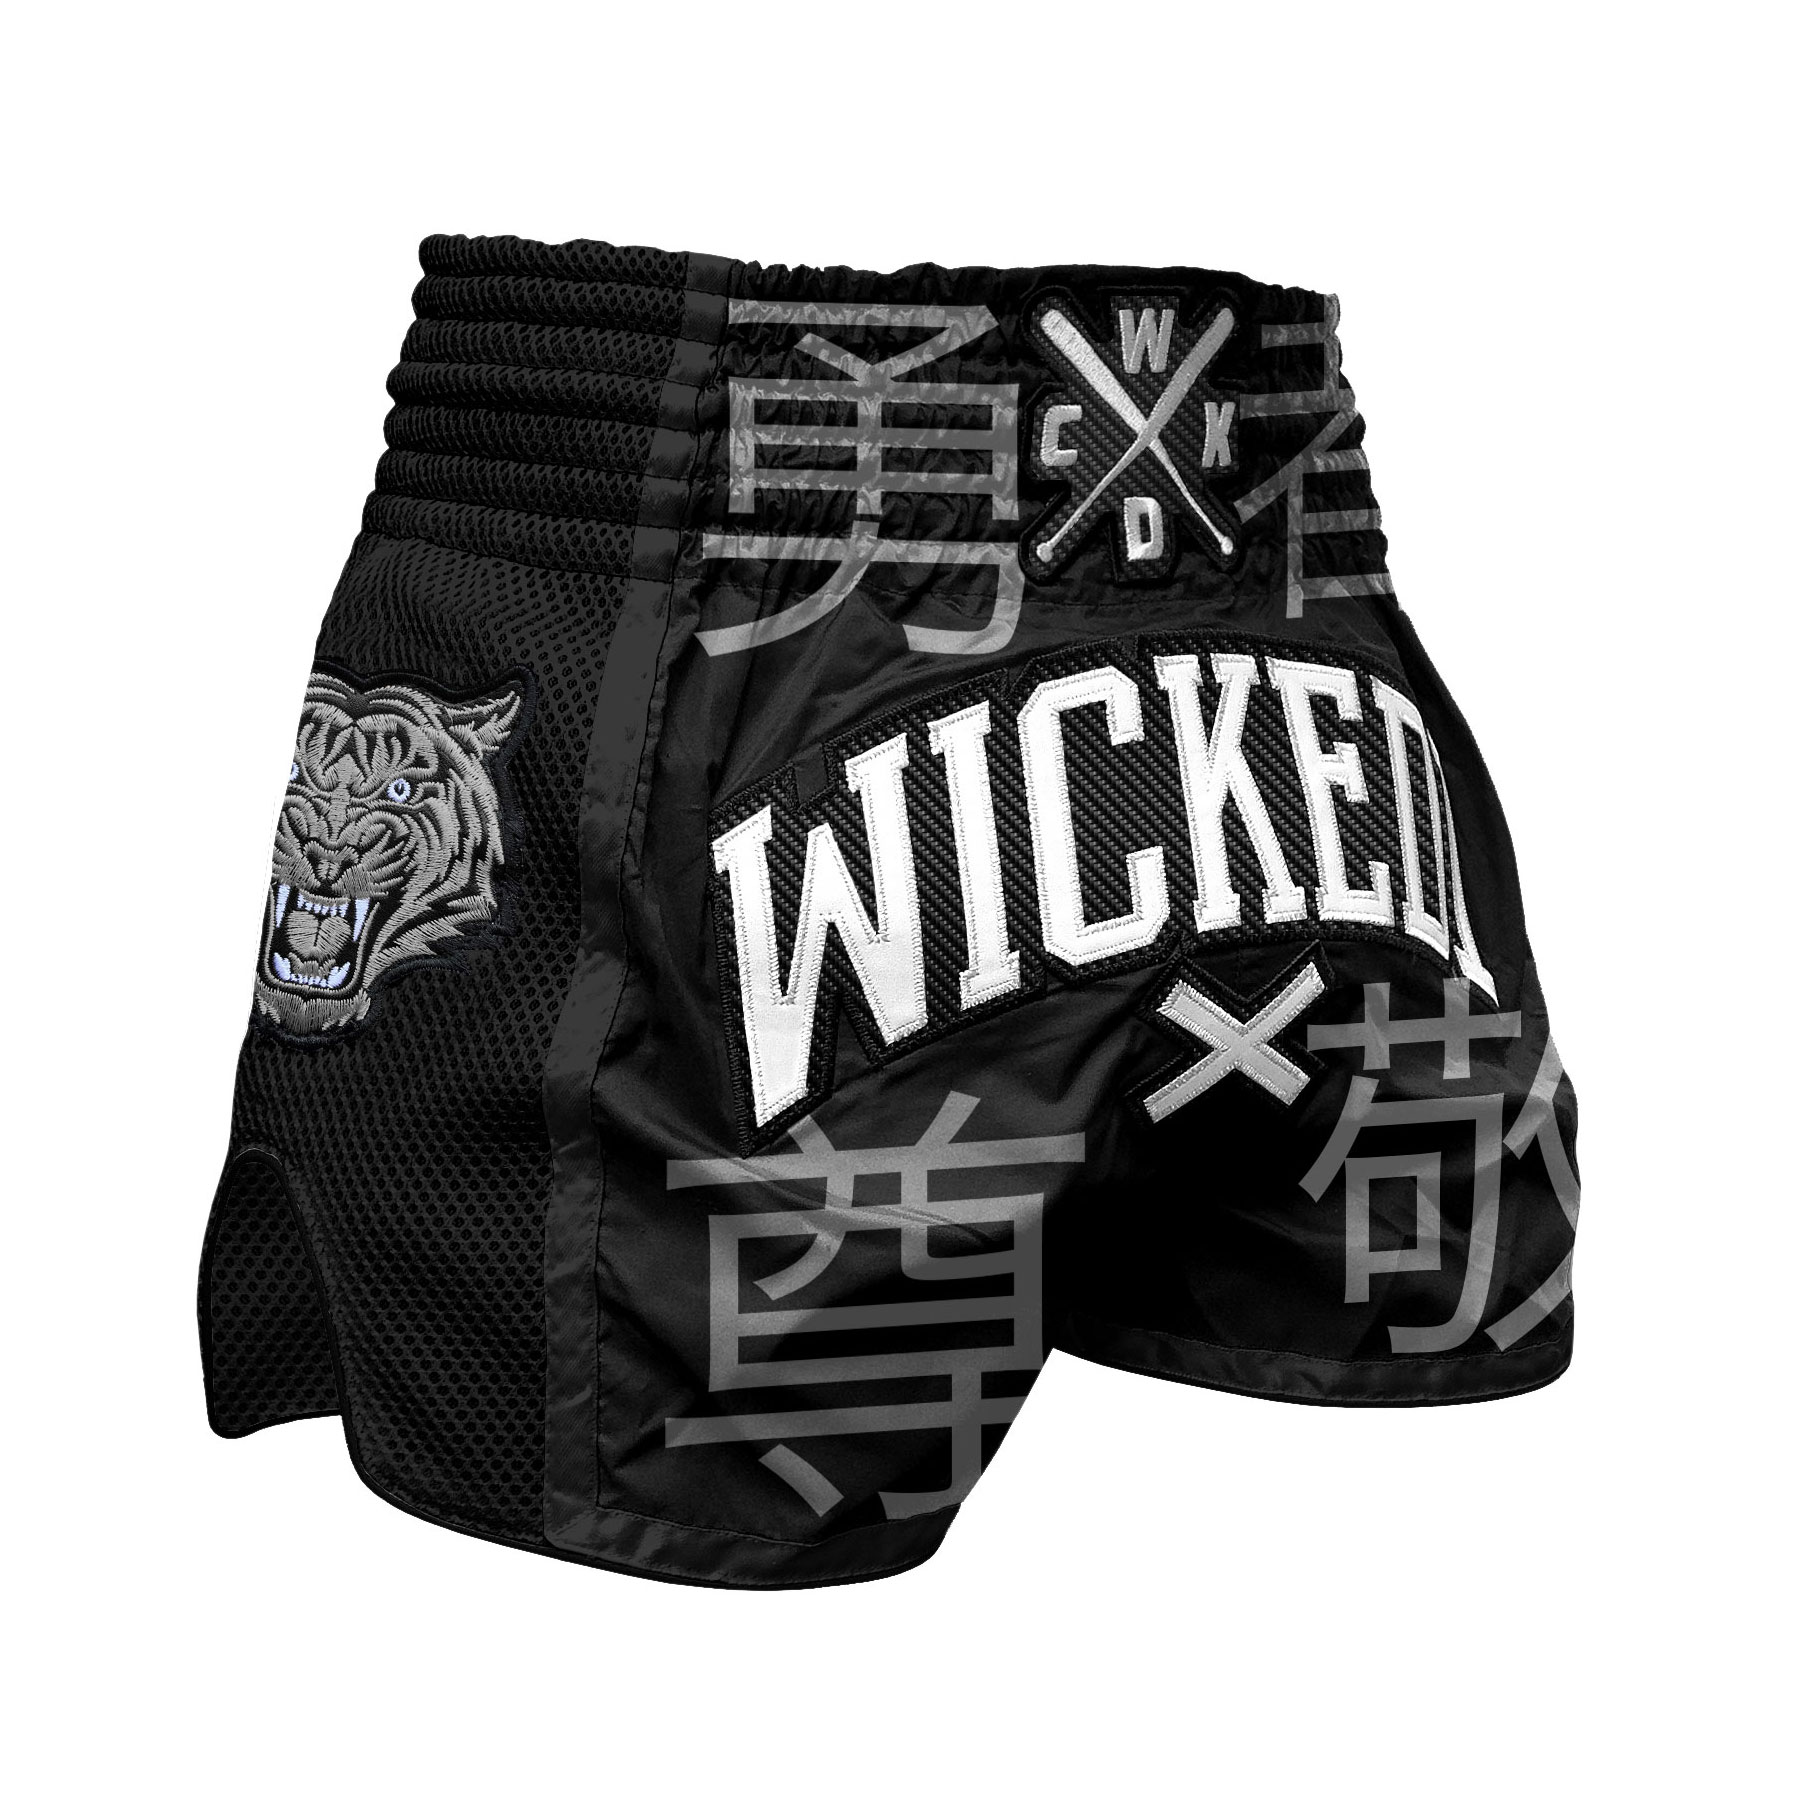 Short Wicked one Japan